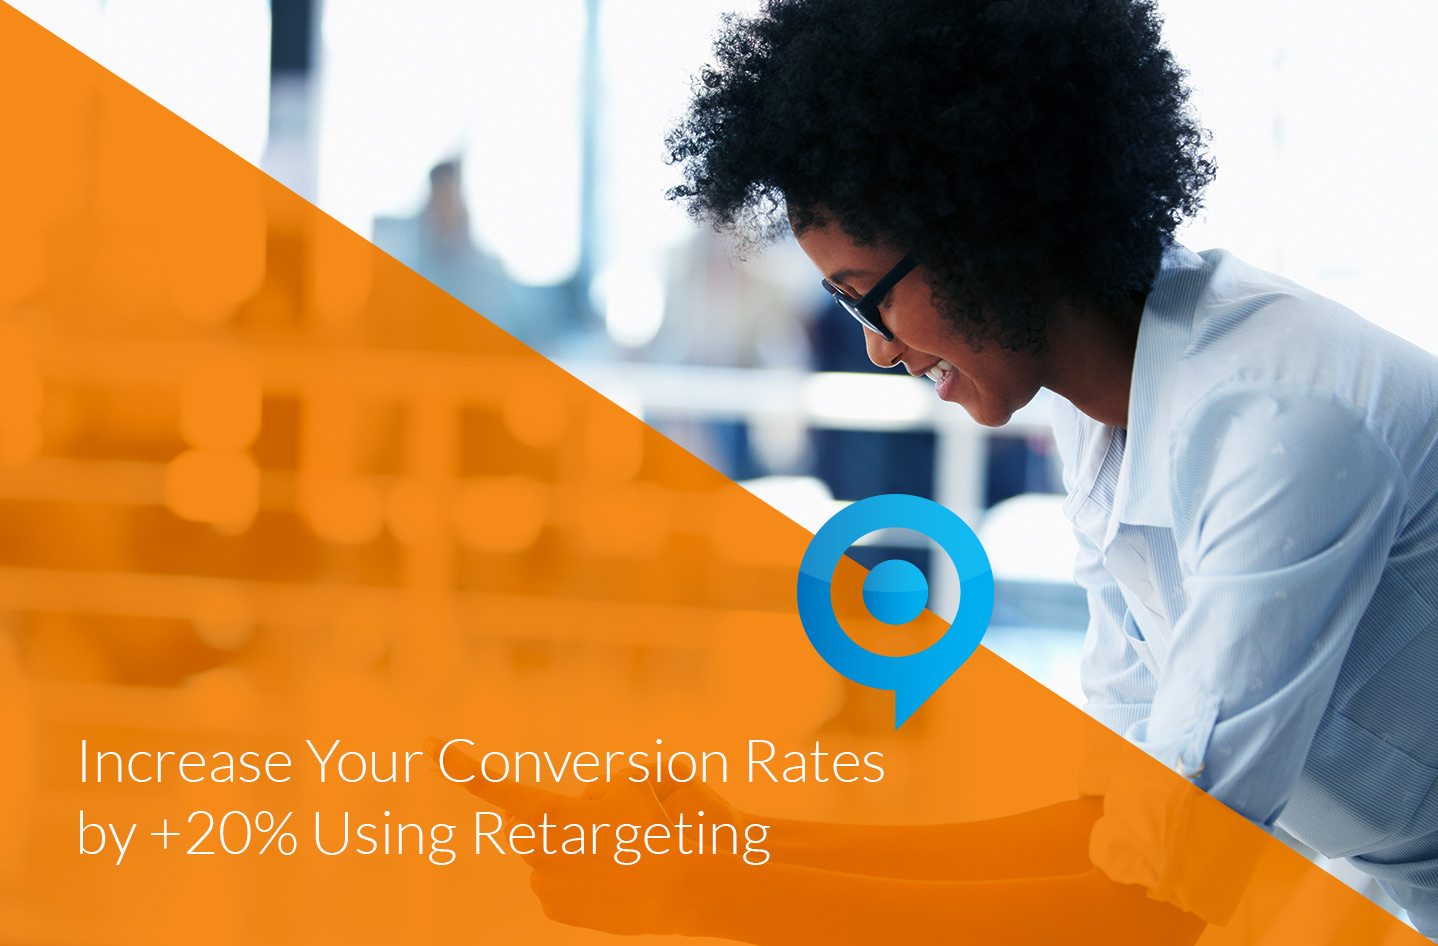 Increase-Your-Conversion-Rates-by-+20%-Using-Retargeting Image